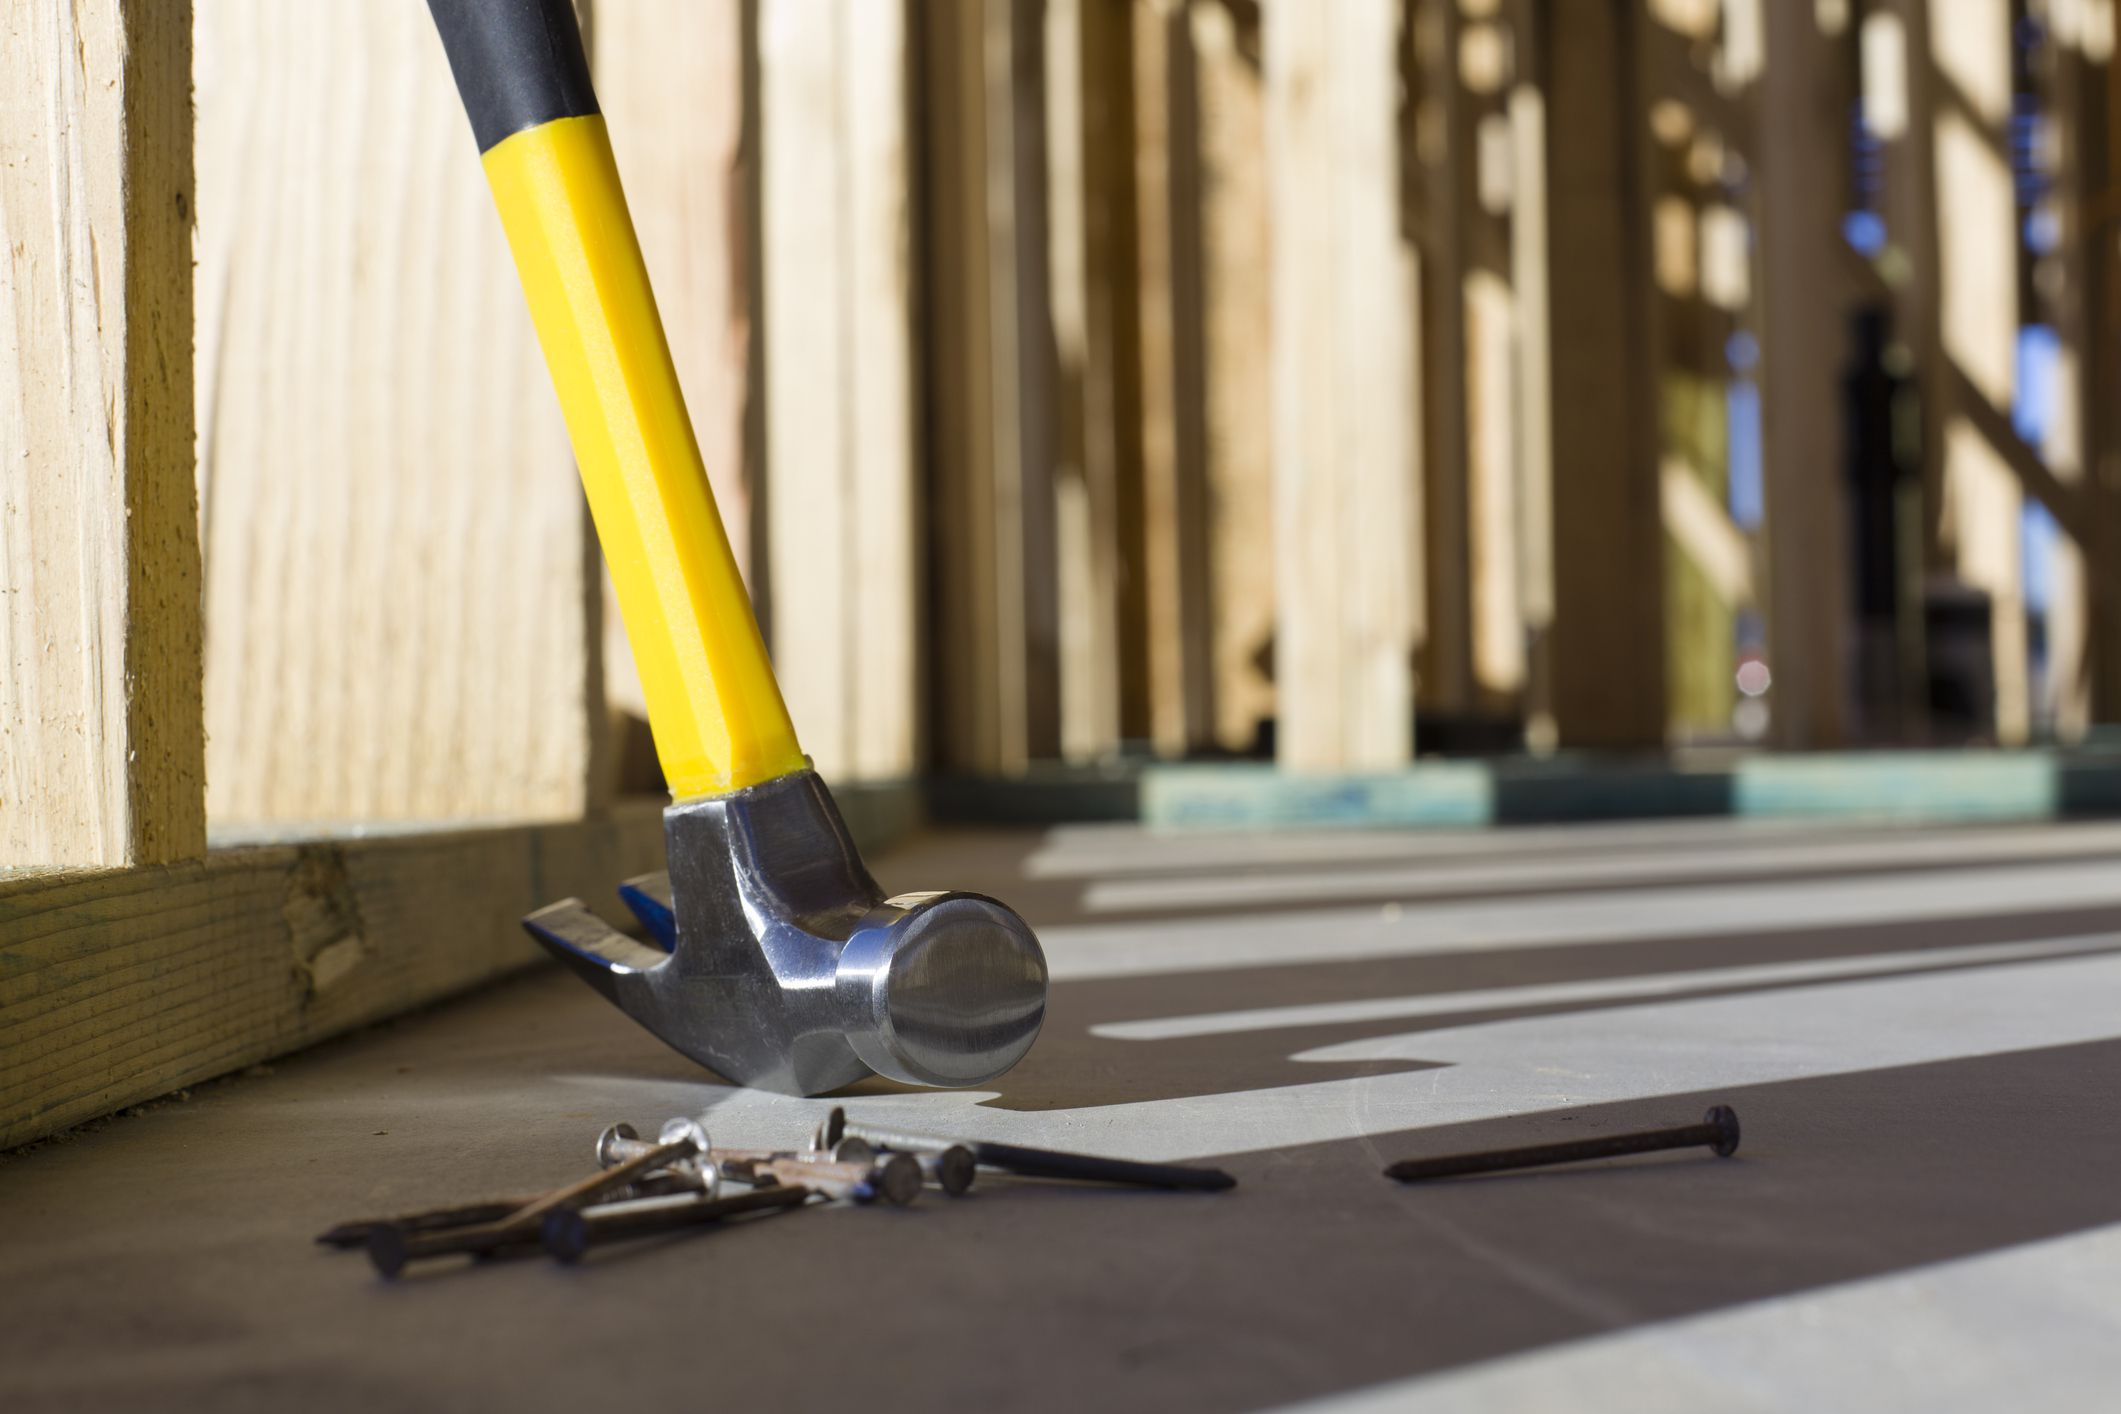 How To Nail Into Concrete By Hand With Concrete Nails